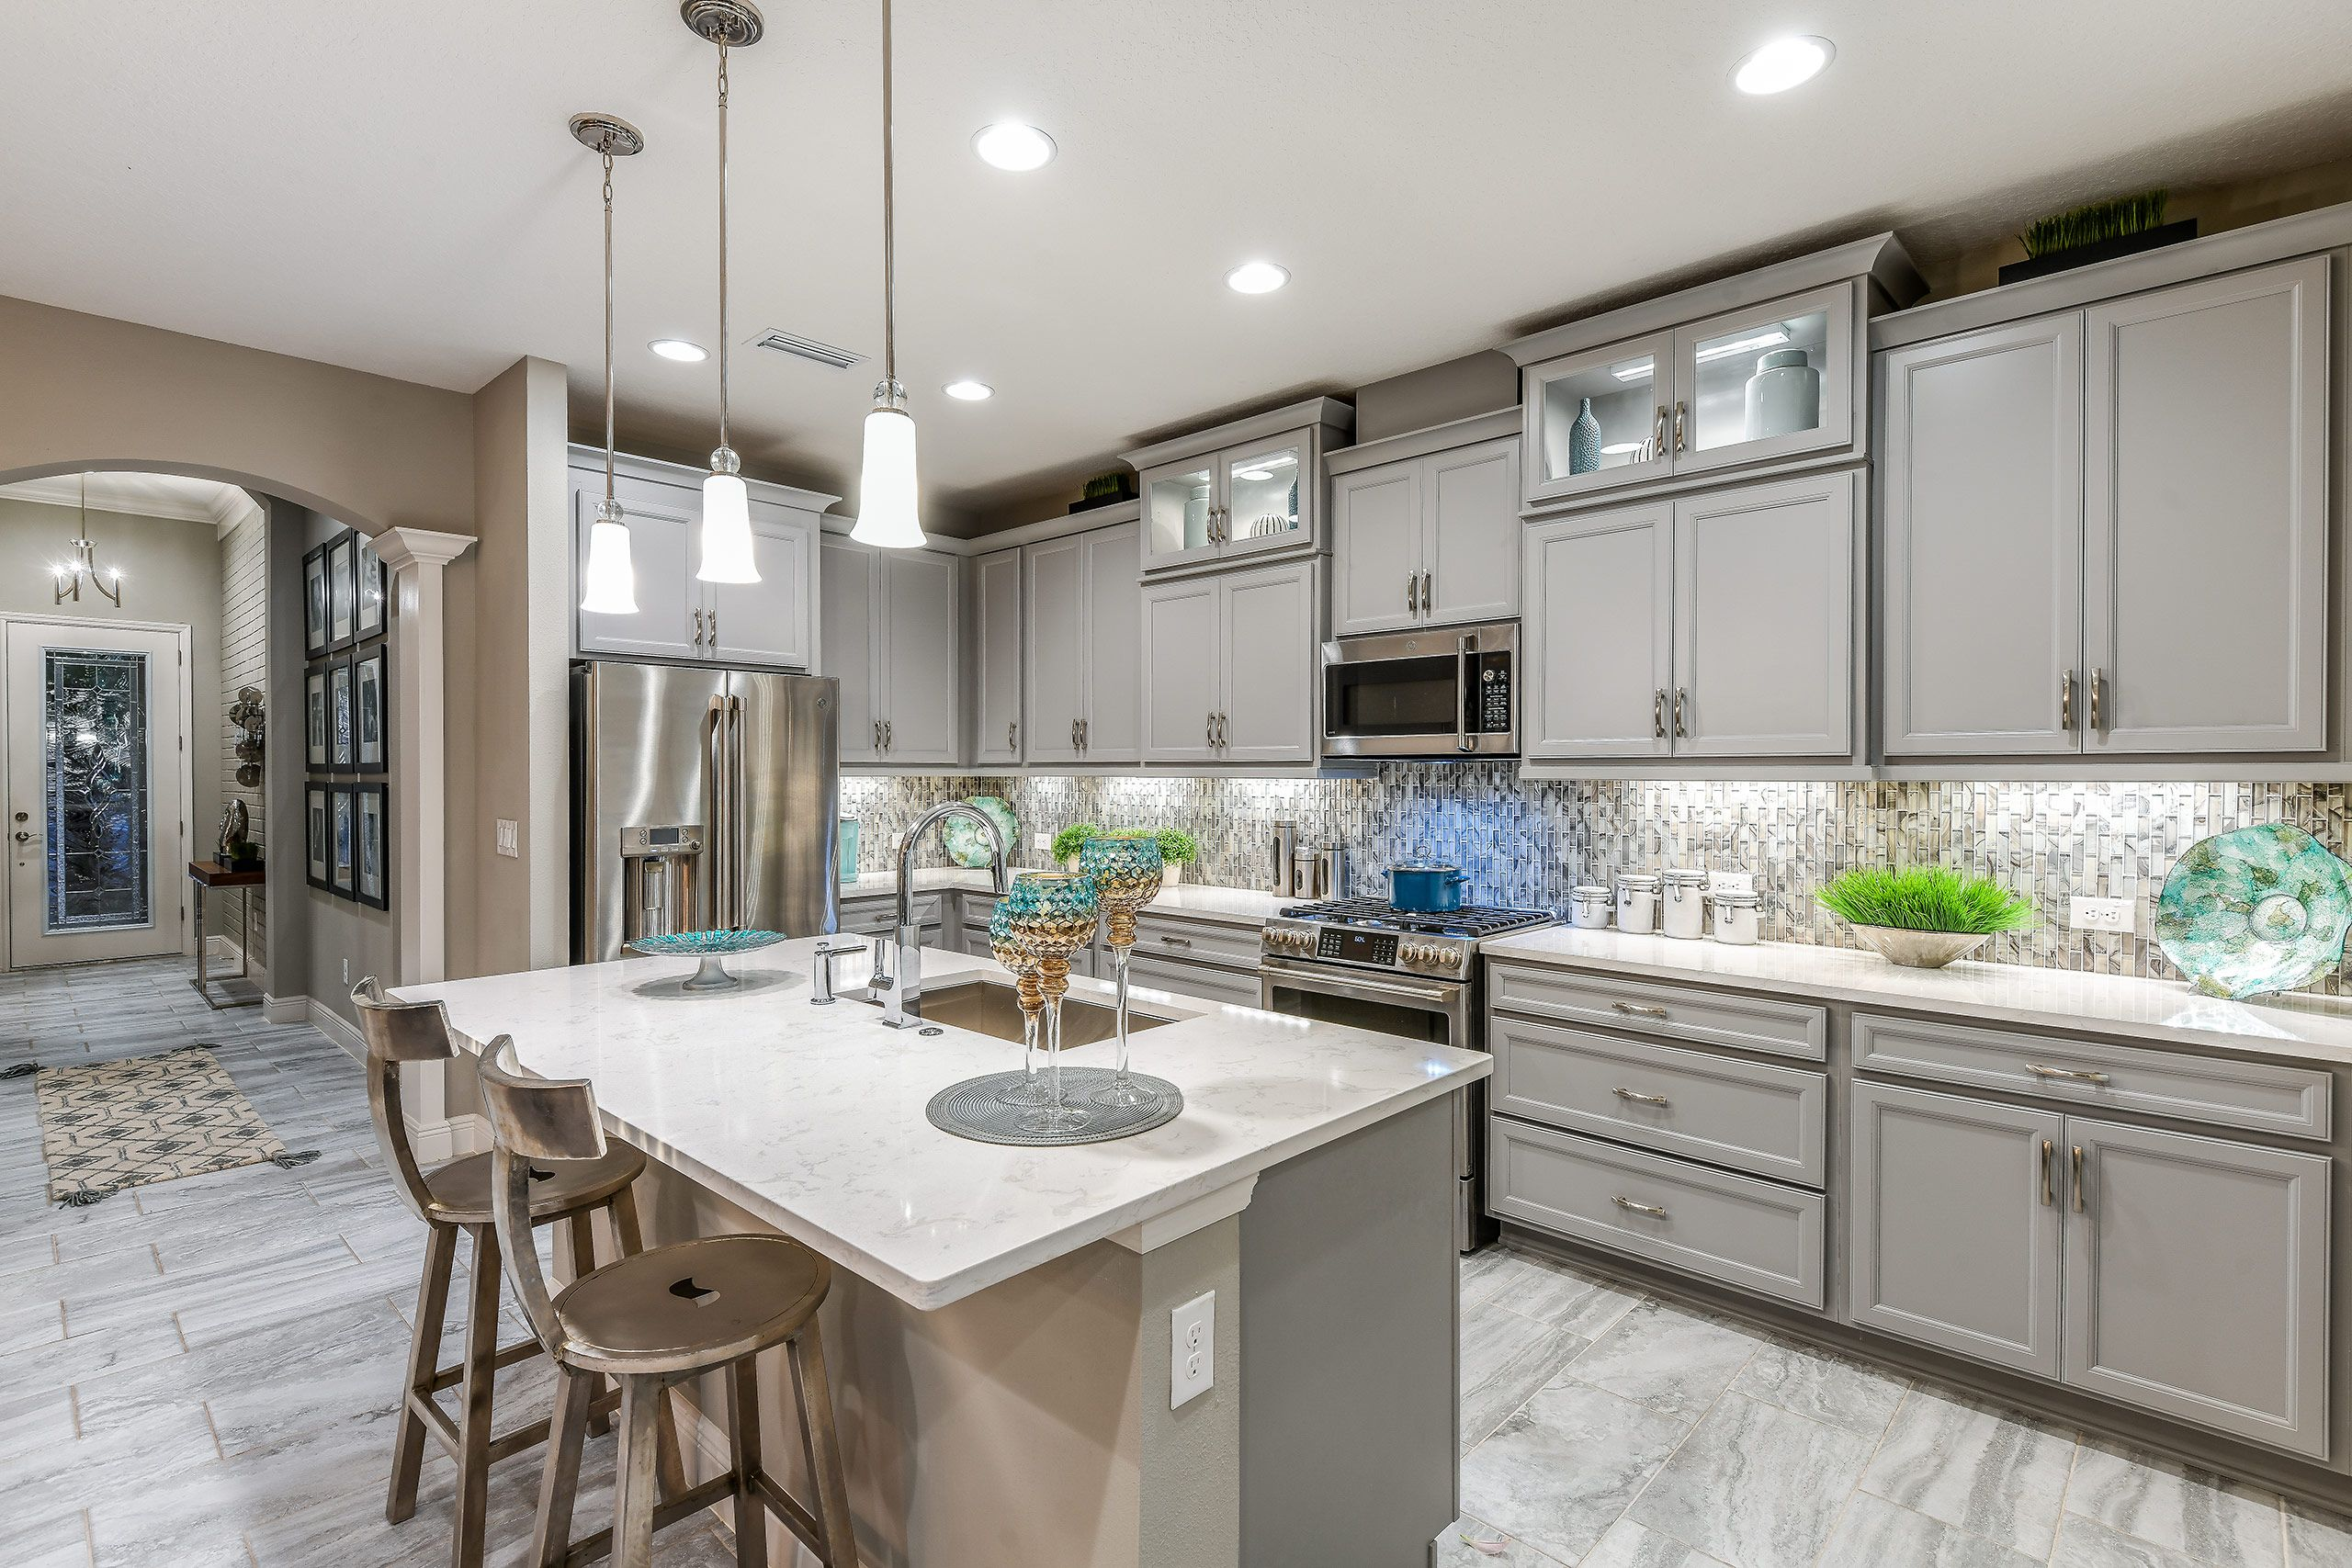 Kitchen featured in the Sandpiper By Homes by WestBay in Tampa-St. Petersburg, FL